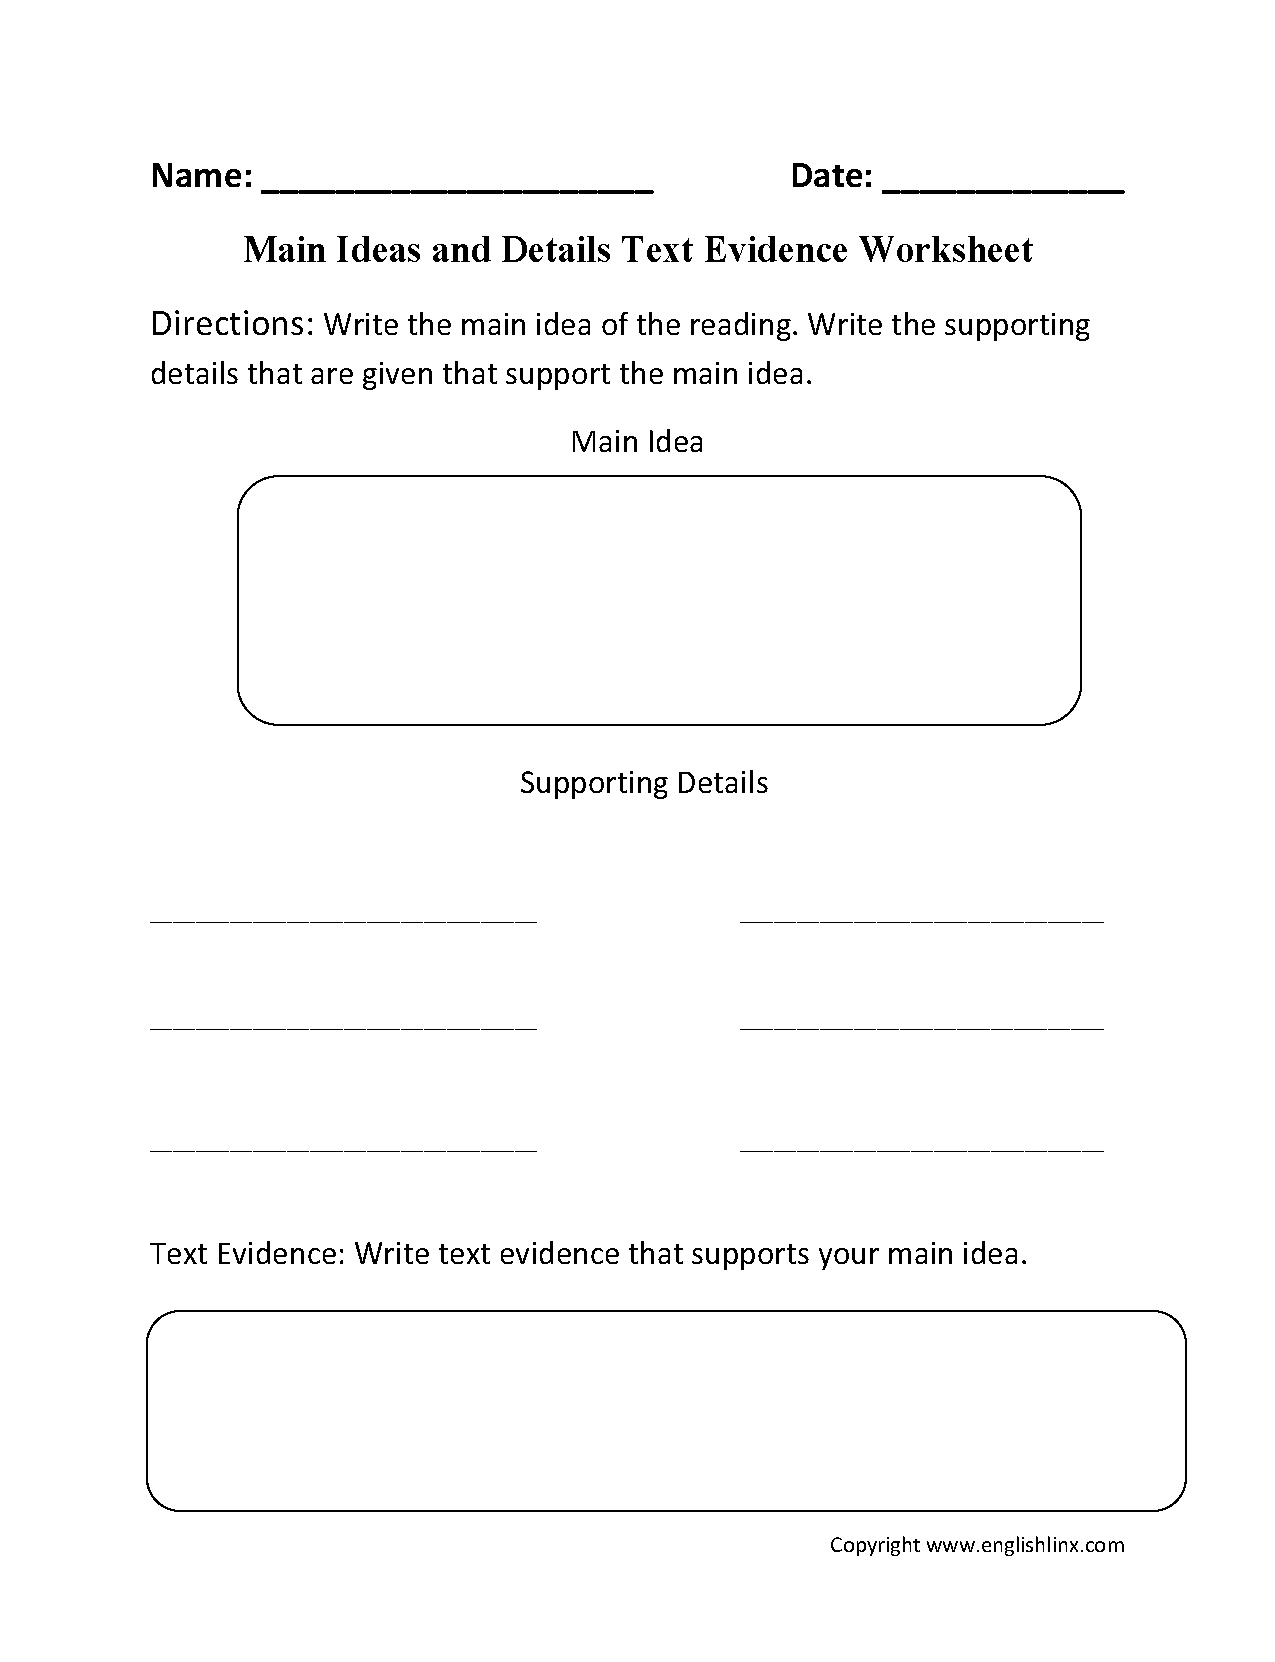 Content By Subject Worksheets Reading Worksheets Text Evidence Reading Worksheets Main Idea Worksheet [ 1662 x 1275 Pixel ]